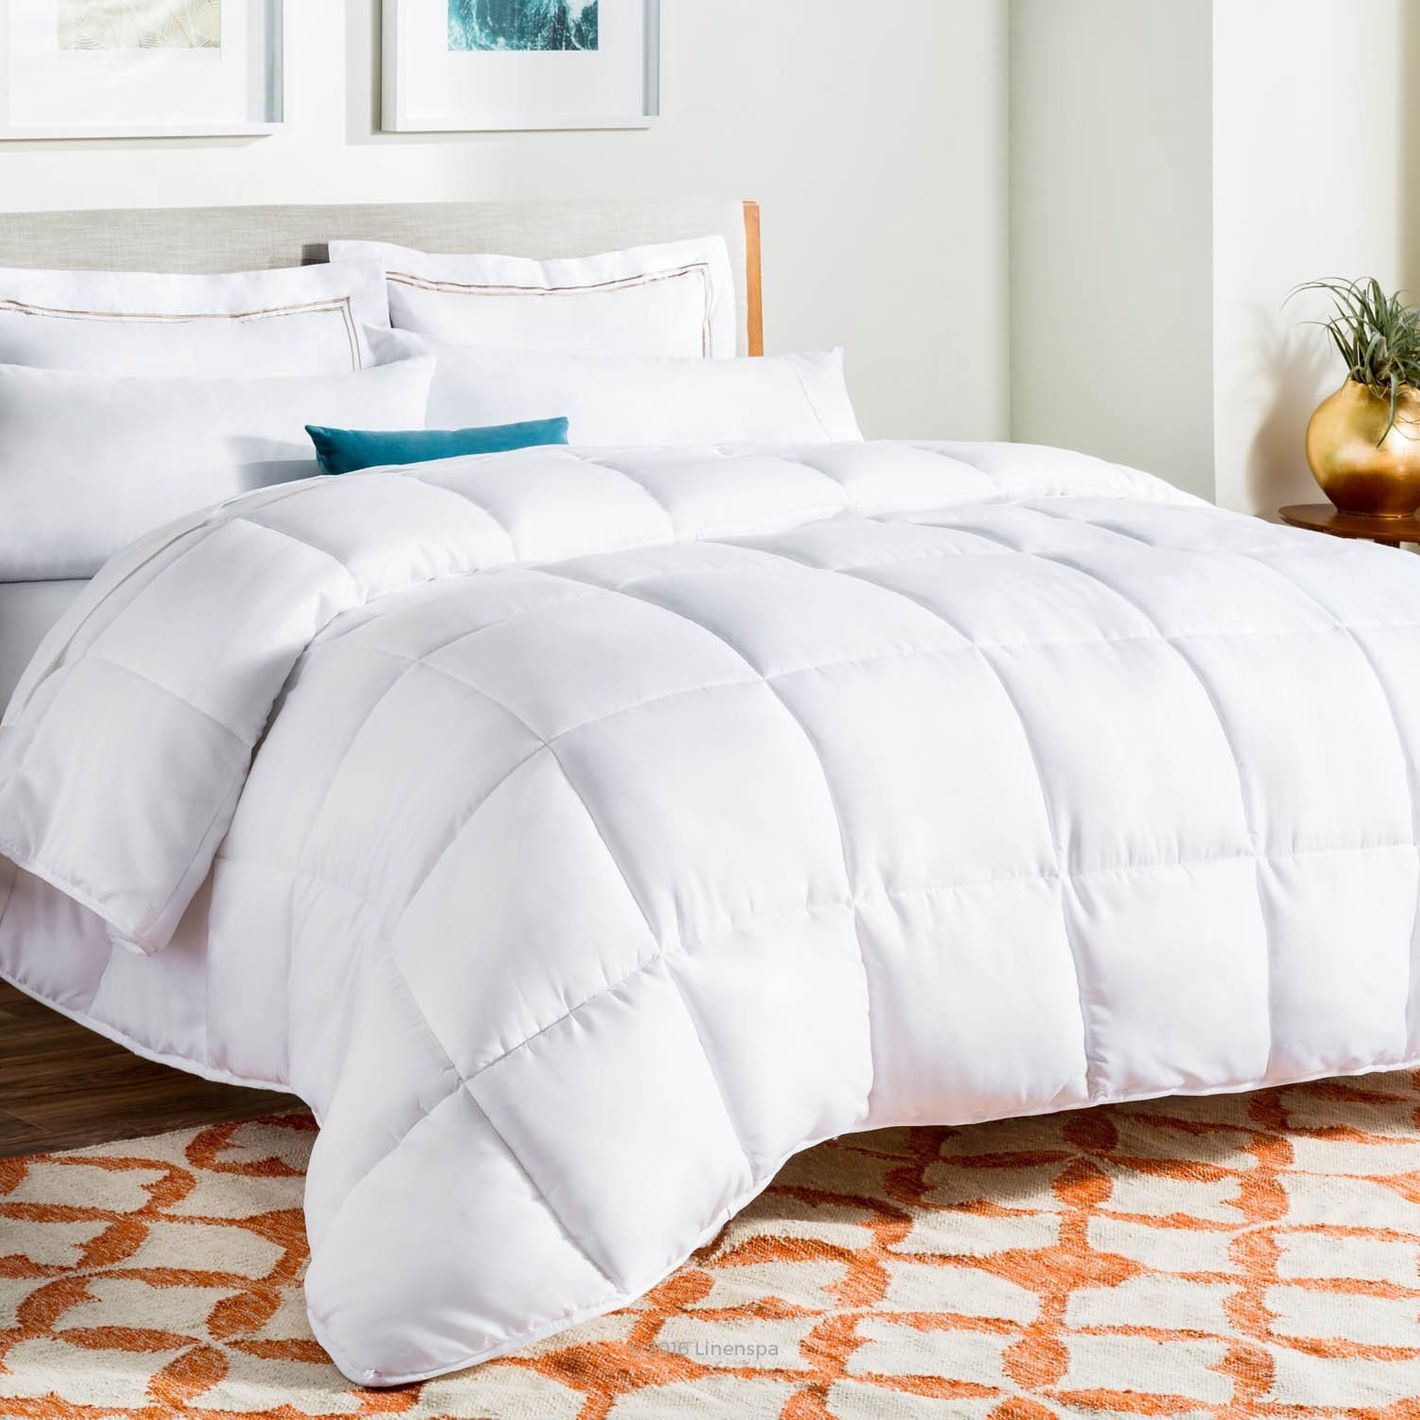 15 Best Down And Down Alternative Comforters Reviewed 2019